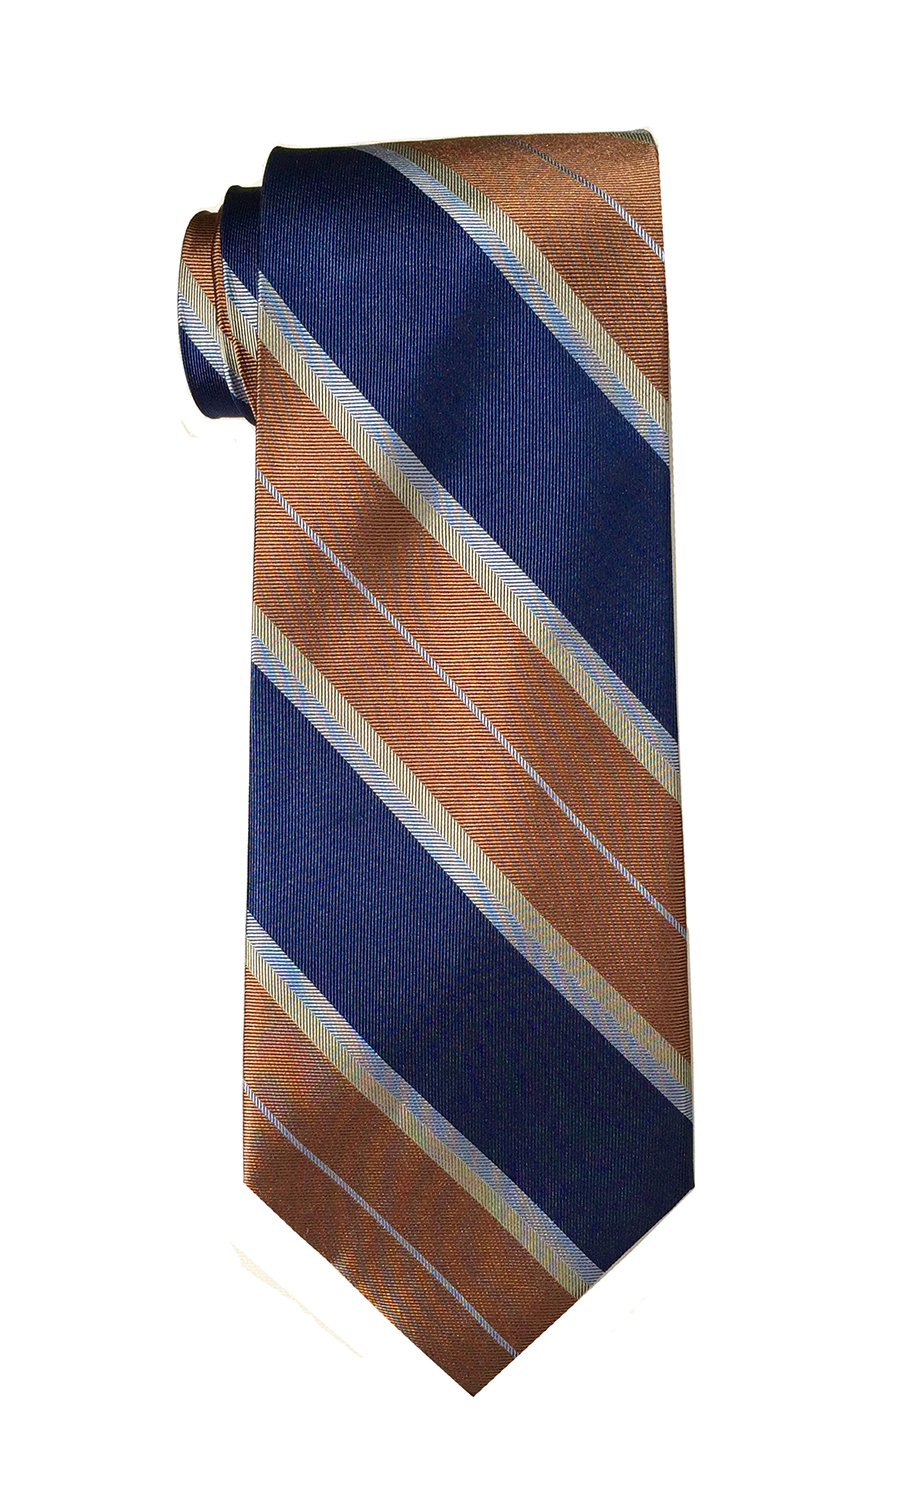 Oscar Lima tie in navy and rust